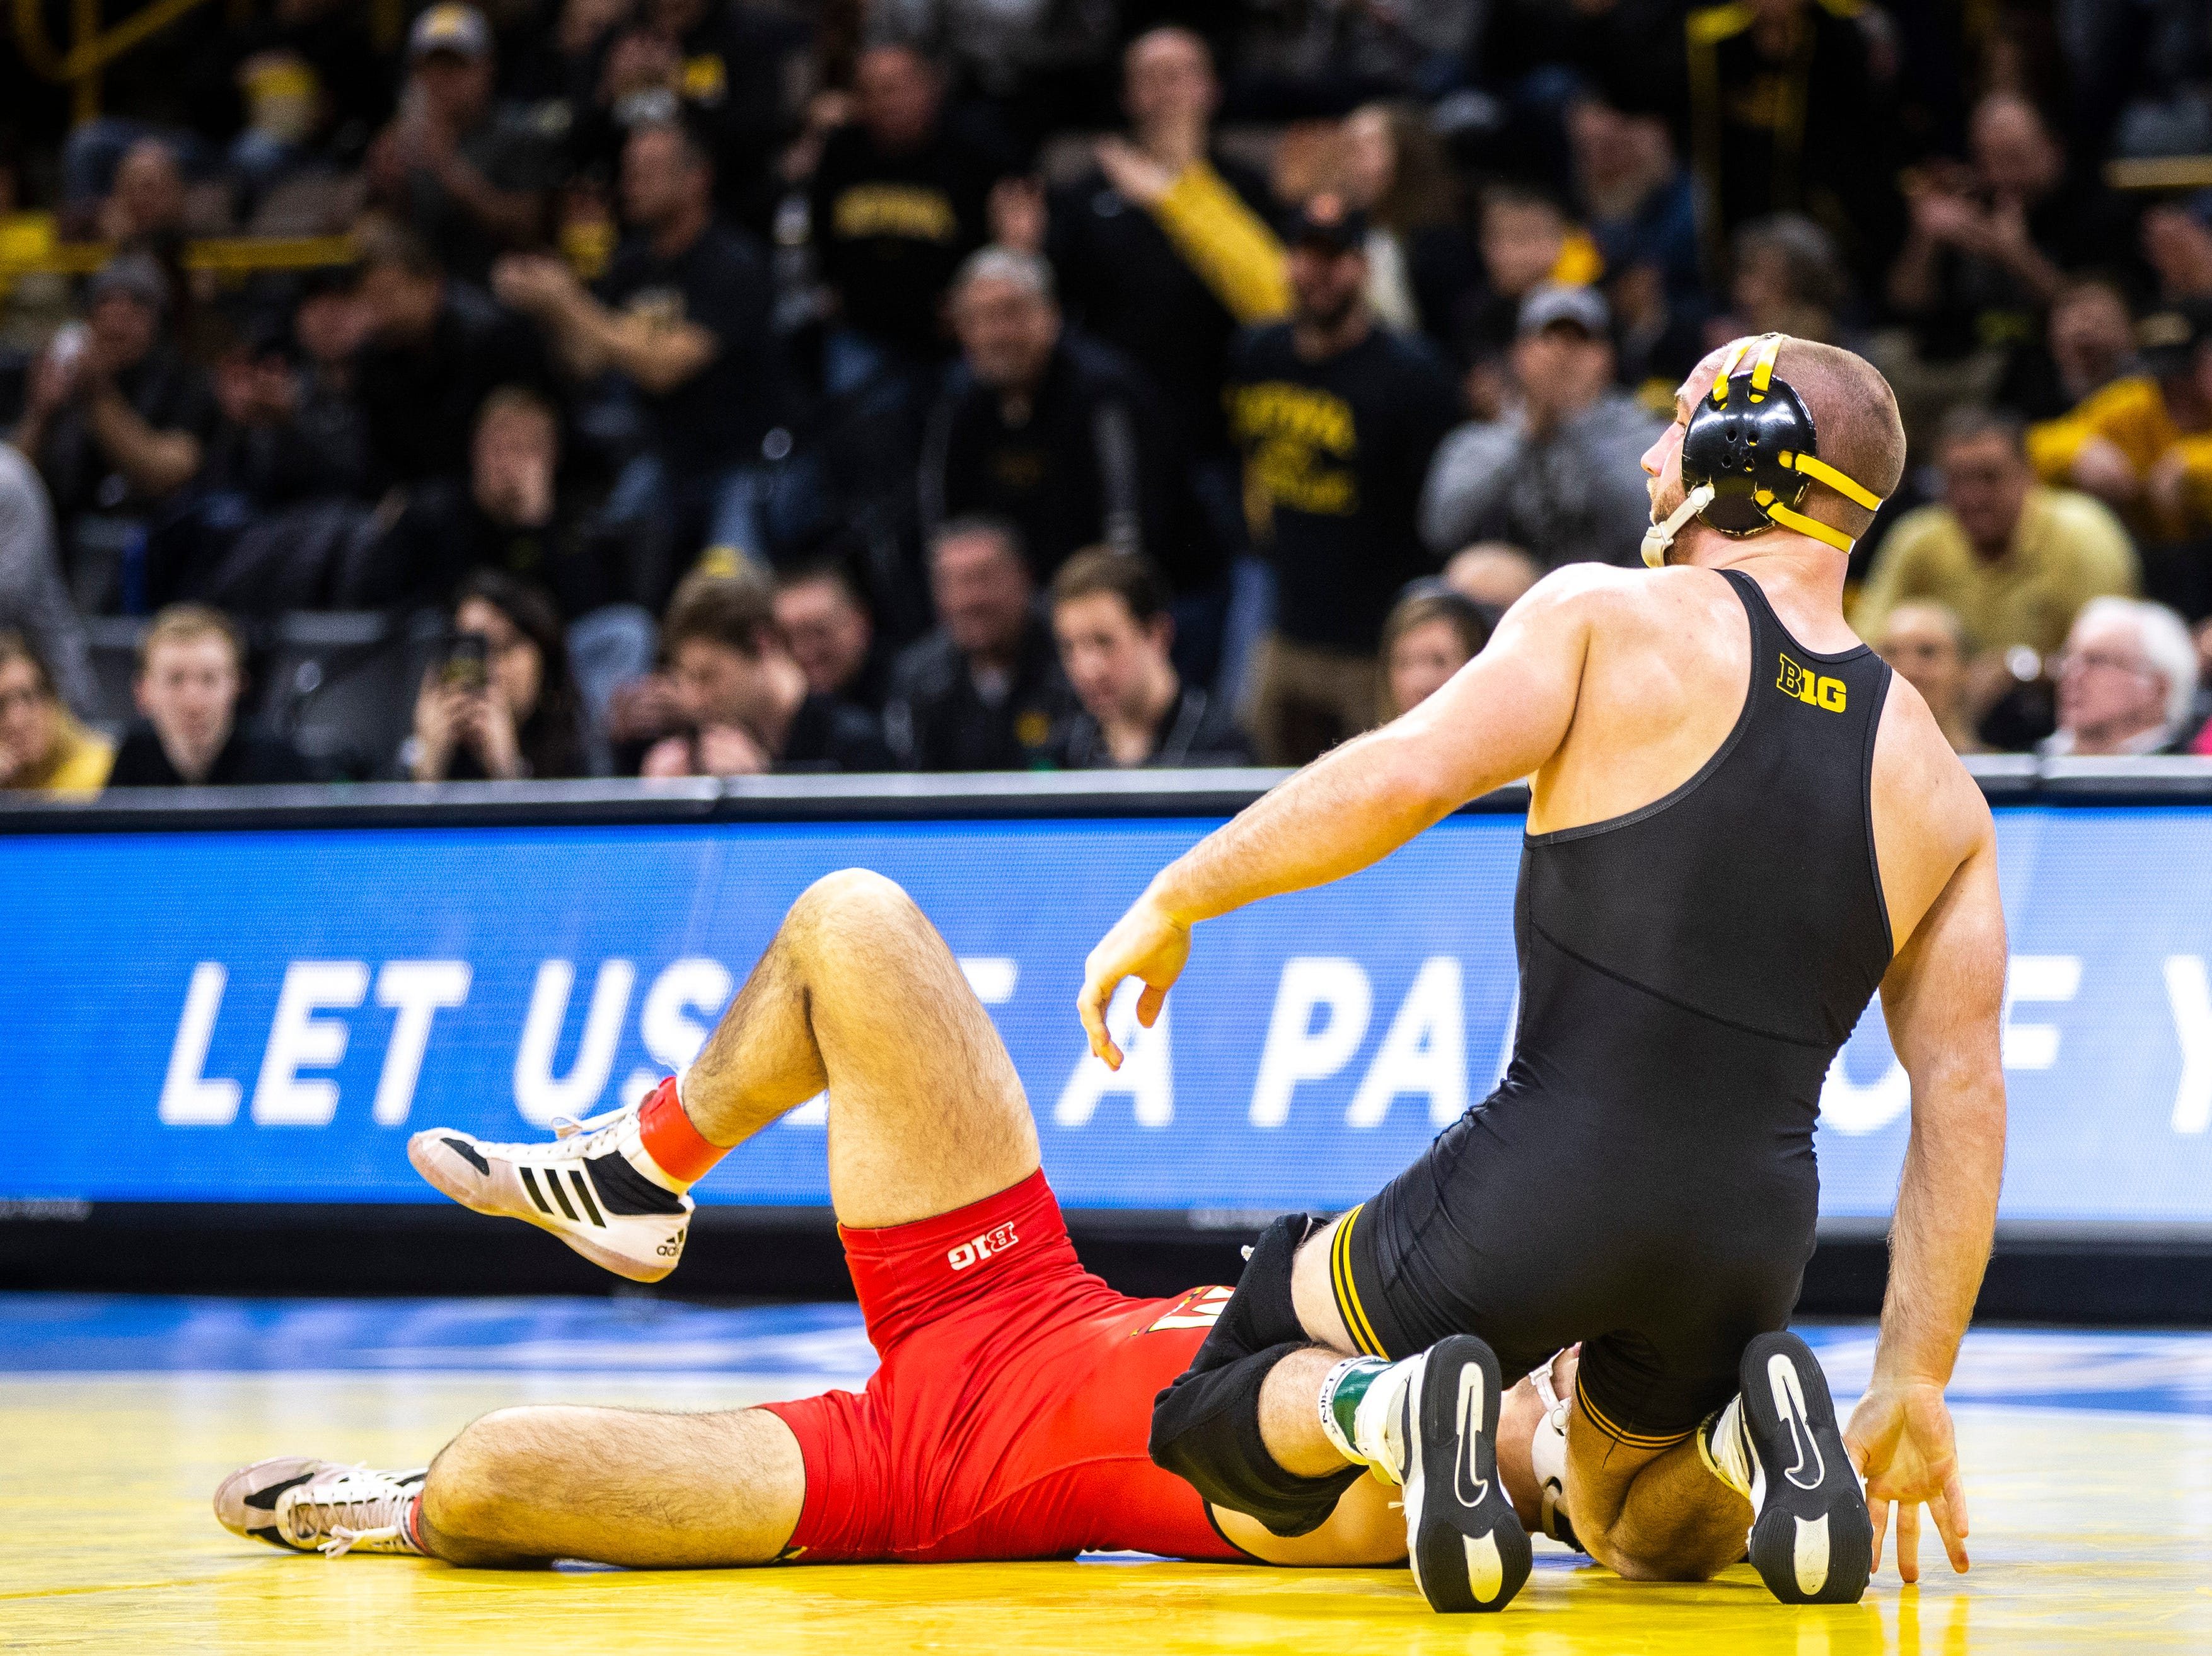 Iowa's Alex Marinelli, right, reacts after pinning Maryland's Philip Spadafora at 165 during a NCAA Big Ten Conference wrestling dual on Friday, Feb. 8, 2019 at Carver-Hawkeye Arena in Iowa City, Iowa.